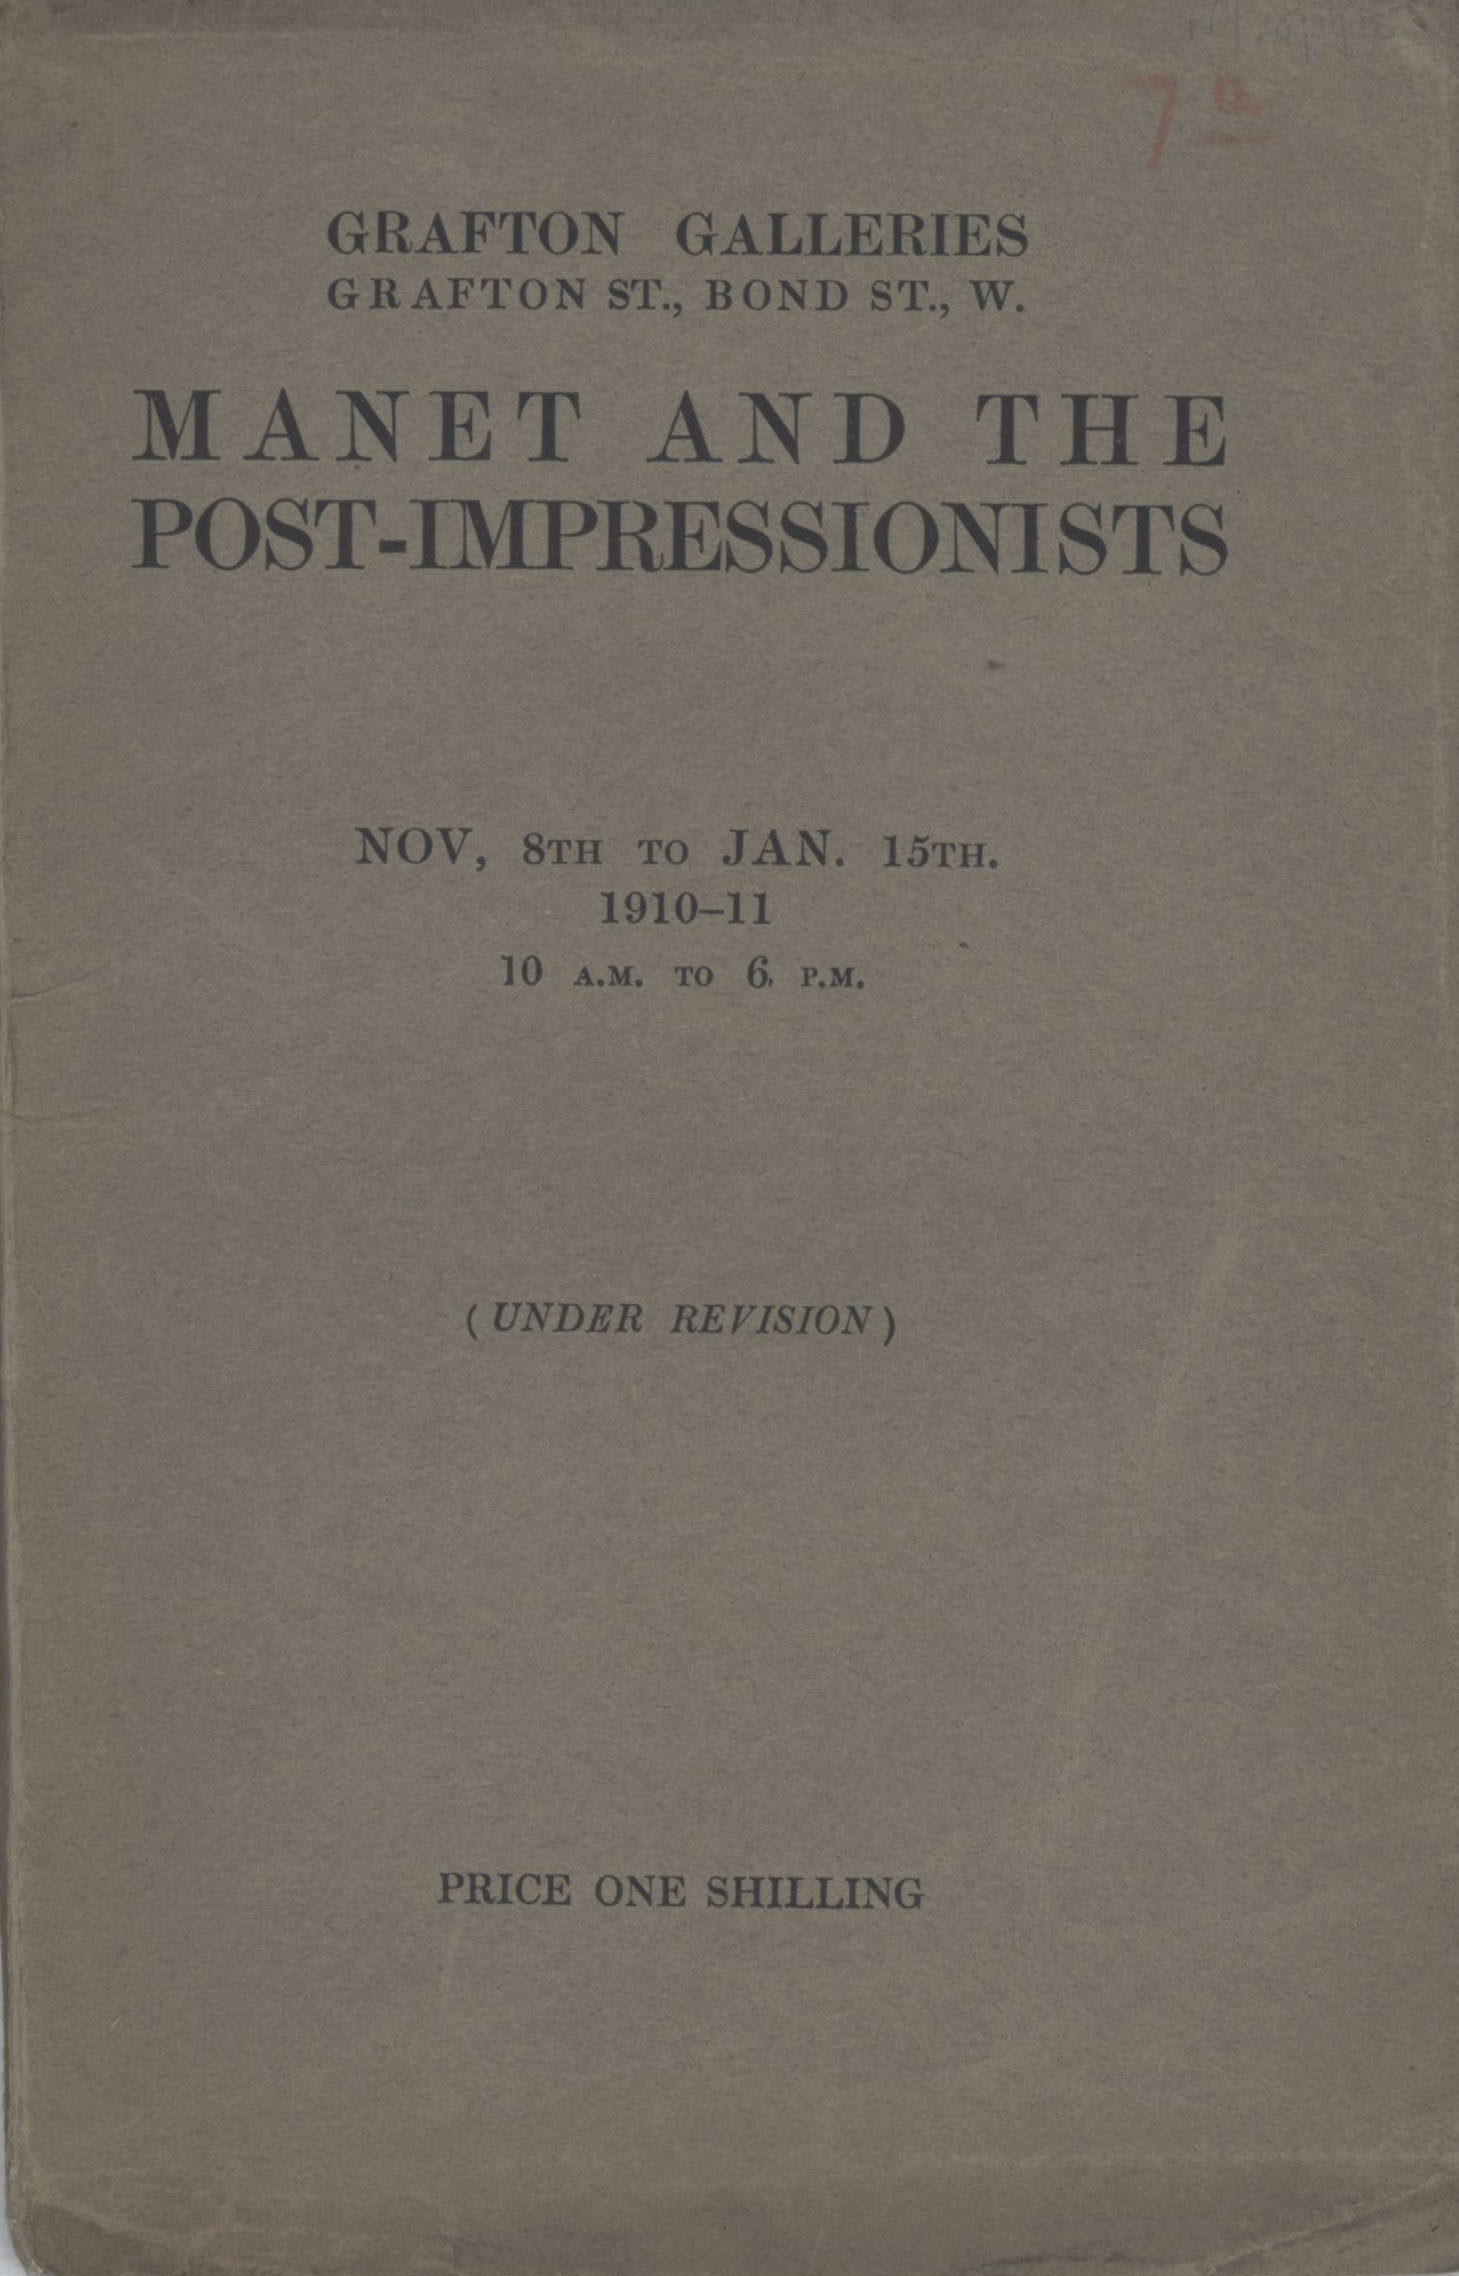 Cover of John Maynard Keynes' copy of the 'Manet and the Post-Impressionists' exhibition catalogue, marked 'Under Revision'. [JMK/PP/70/1]